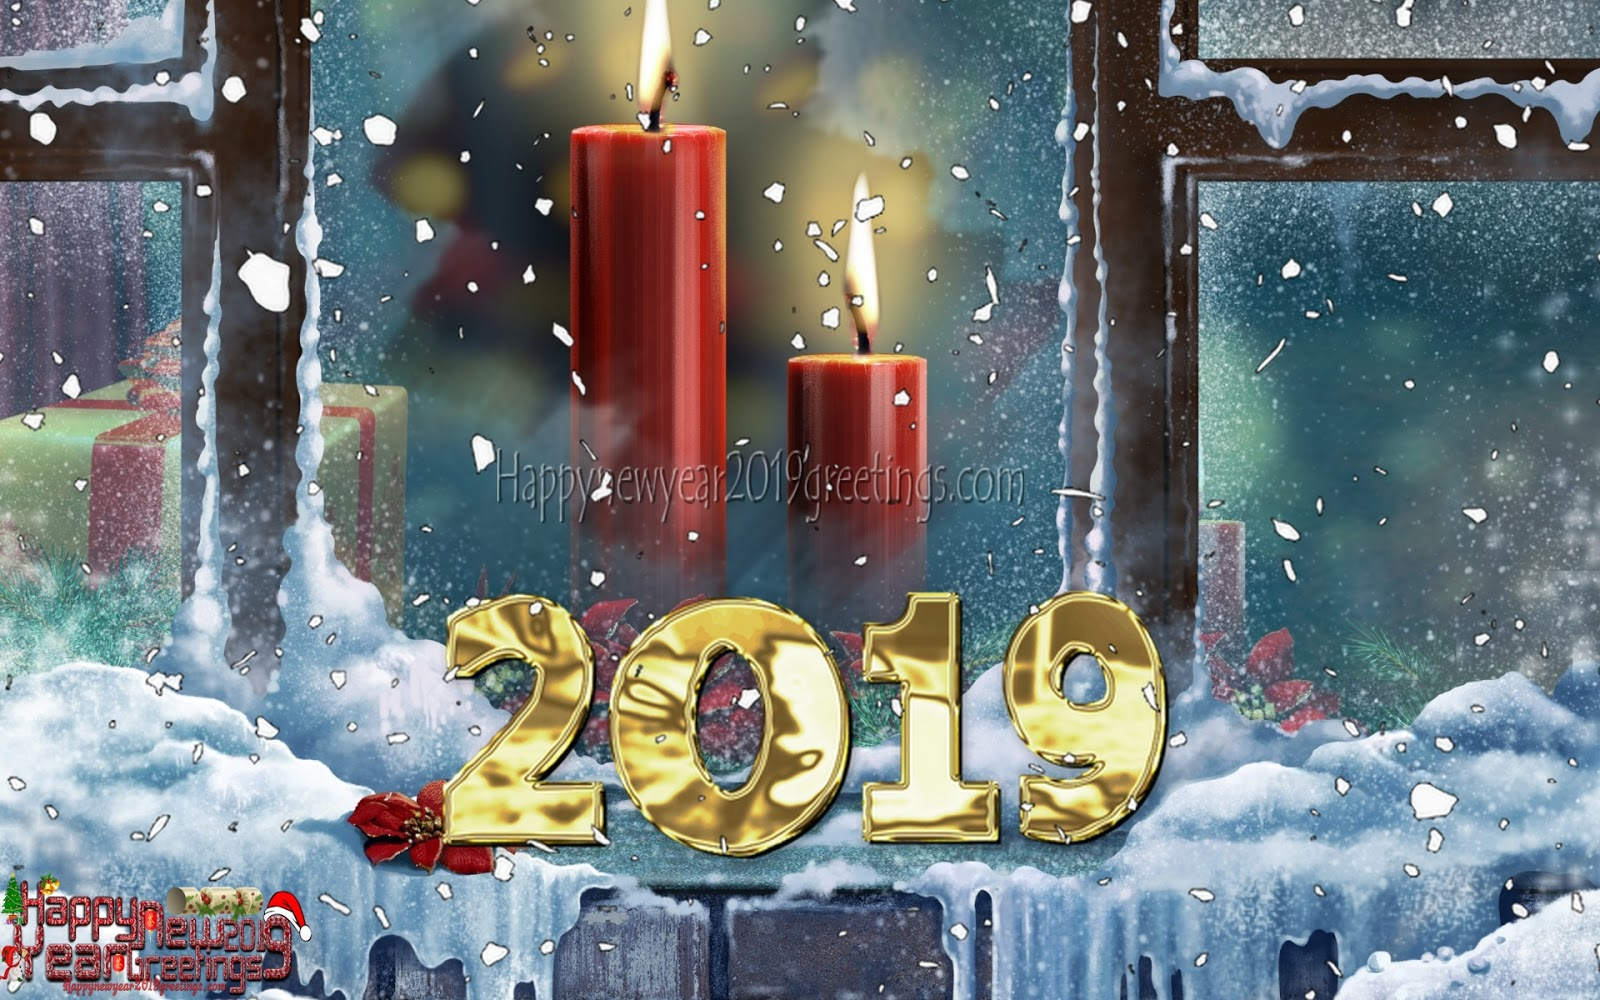 Happy New Year 2019 Images Hd 1080p New Year 2019 Ultra Hd 4k